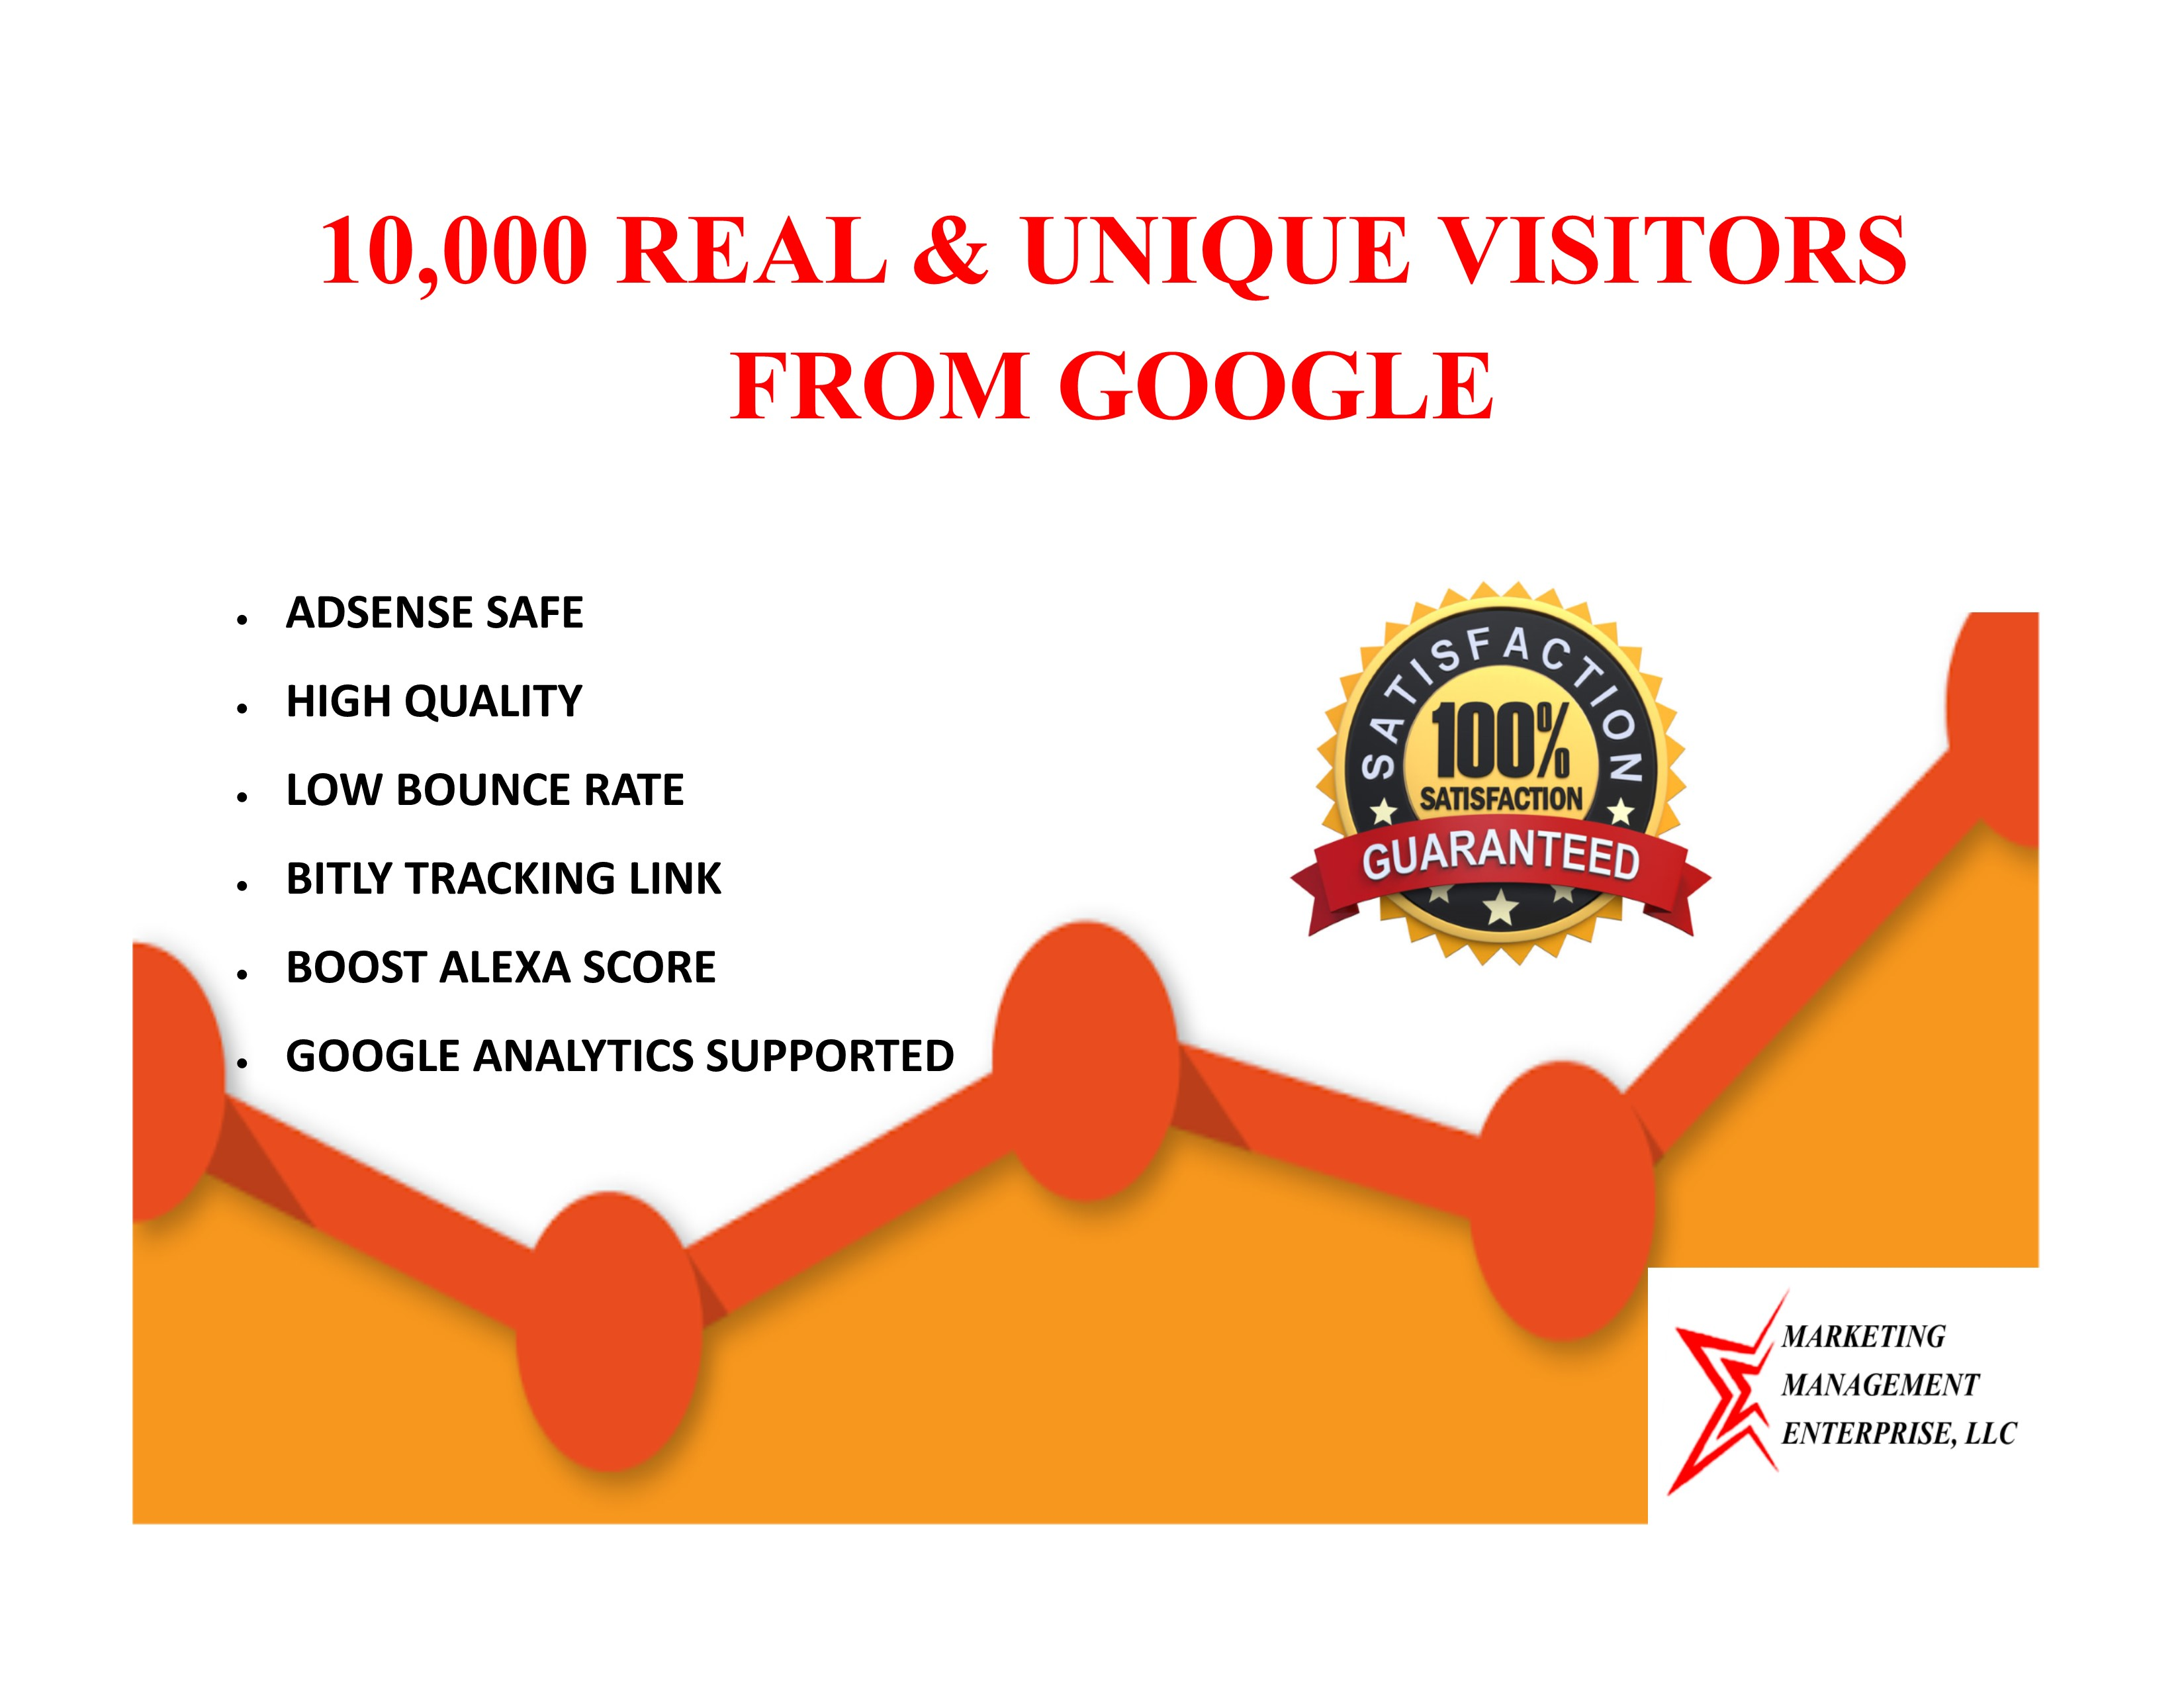 10,000 Real Visitors from GOOGLE